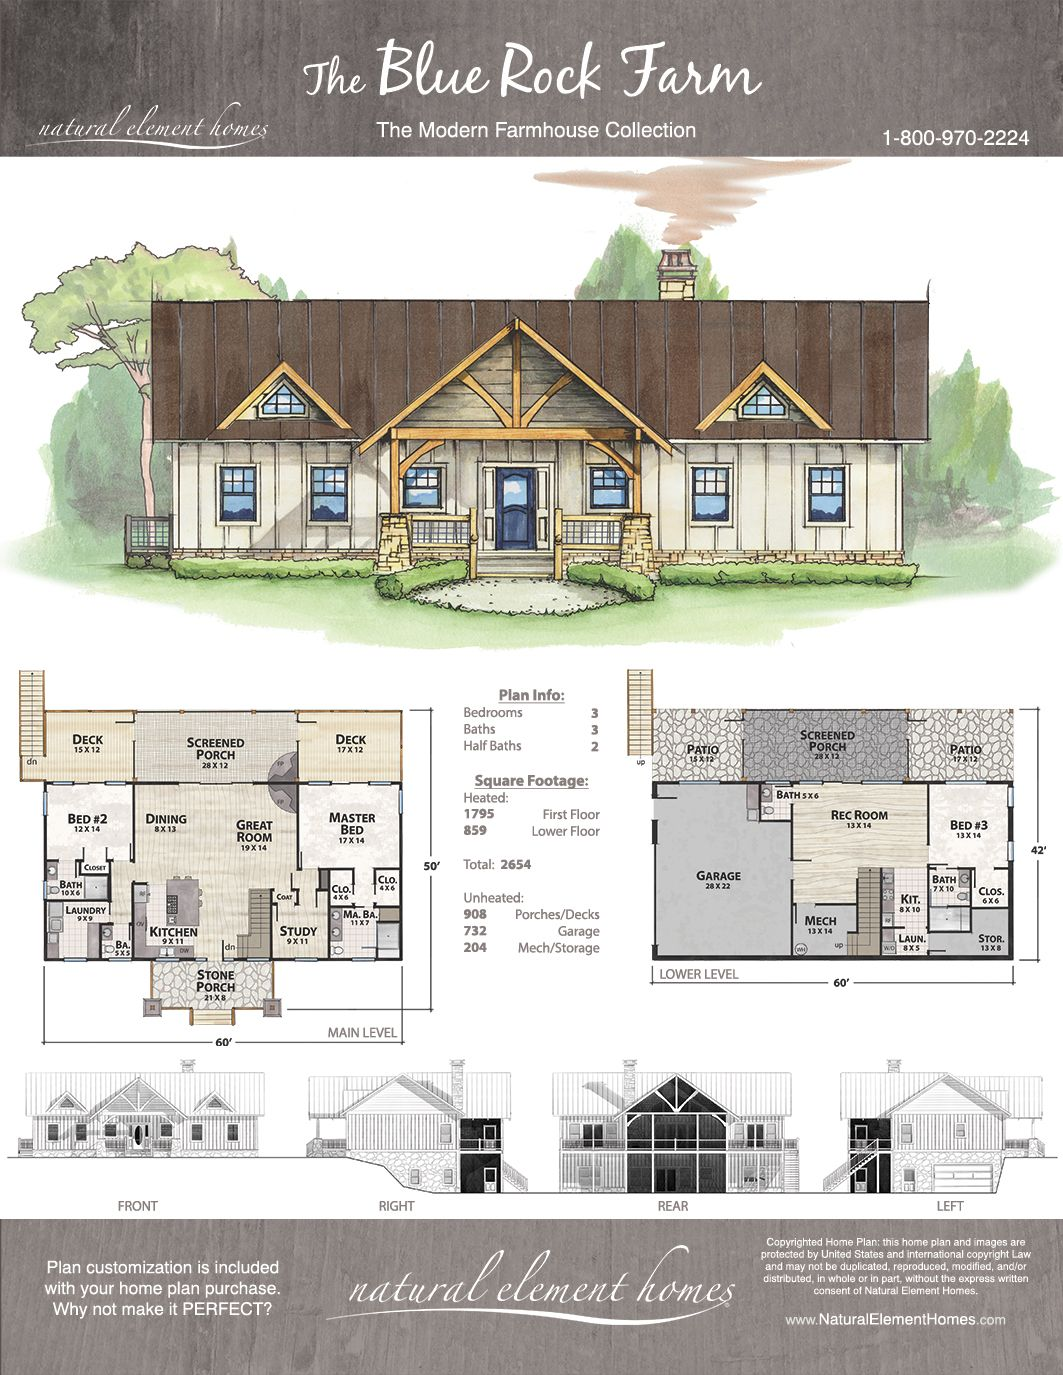 Blue Rock Farm | Natural Element Homes | Farmhouse | Dream ... Rock Home House Plans on rock house schemes, rock house styles, rock hunting, rock sinks bathroom, rock diy, rock books, rock construction, rock architecture, new 4 bedroom home plans, rock landscaping, rock and cedar exterior houses, rock decorating, 4-bedroom modular home floor plans, rock house drawings, rock art, rock house ideas, rock granite, rock home, rock building materials, rock and log house,